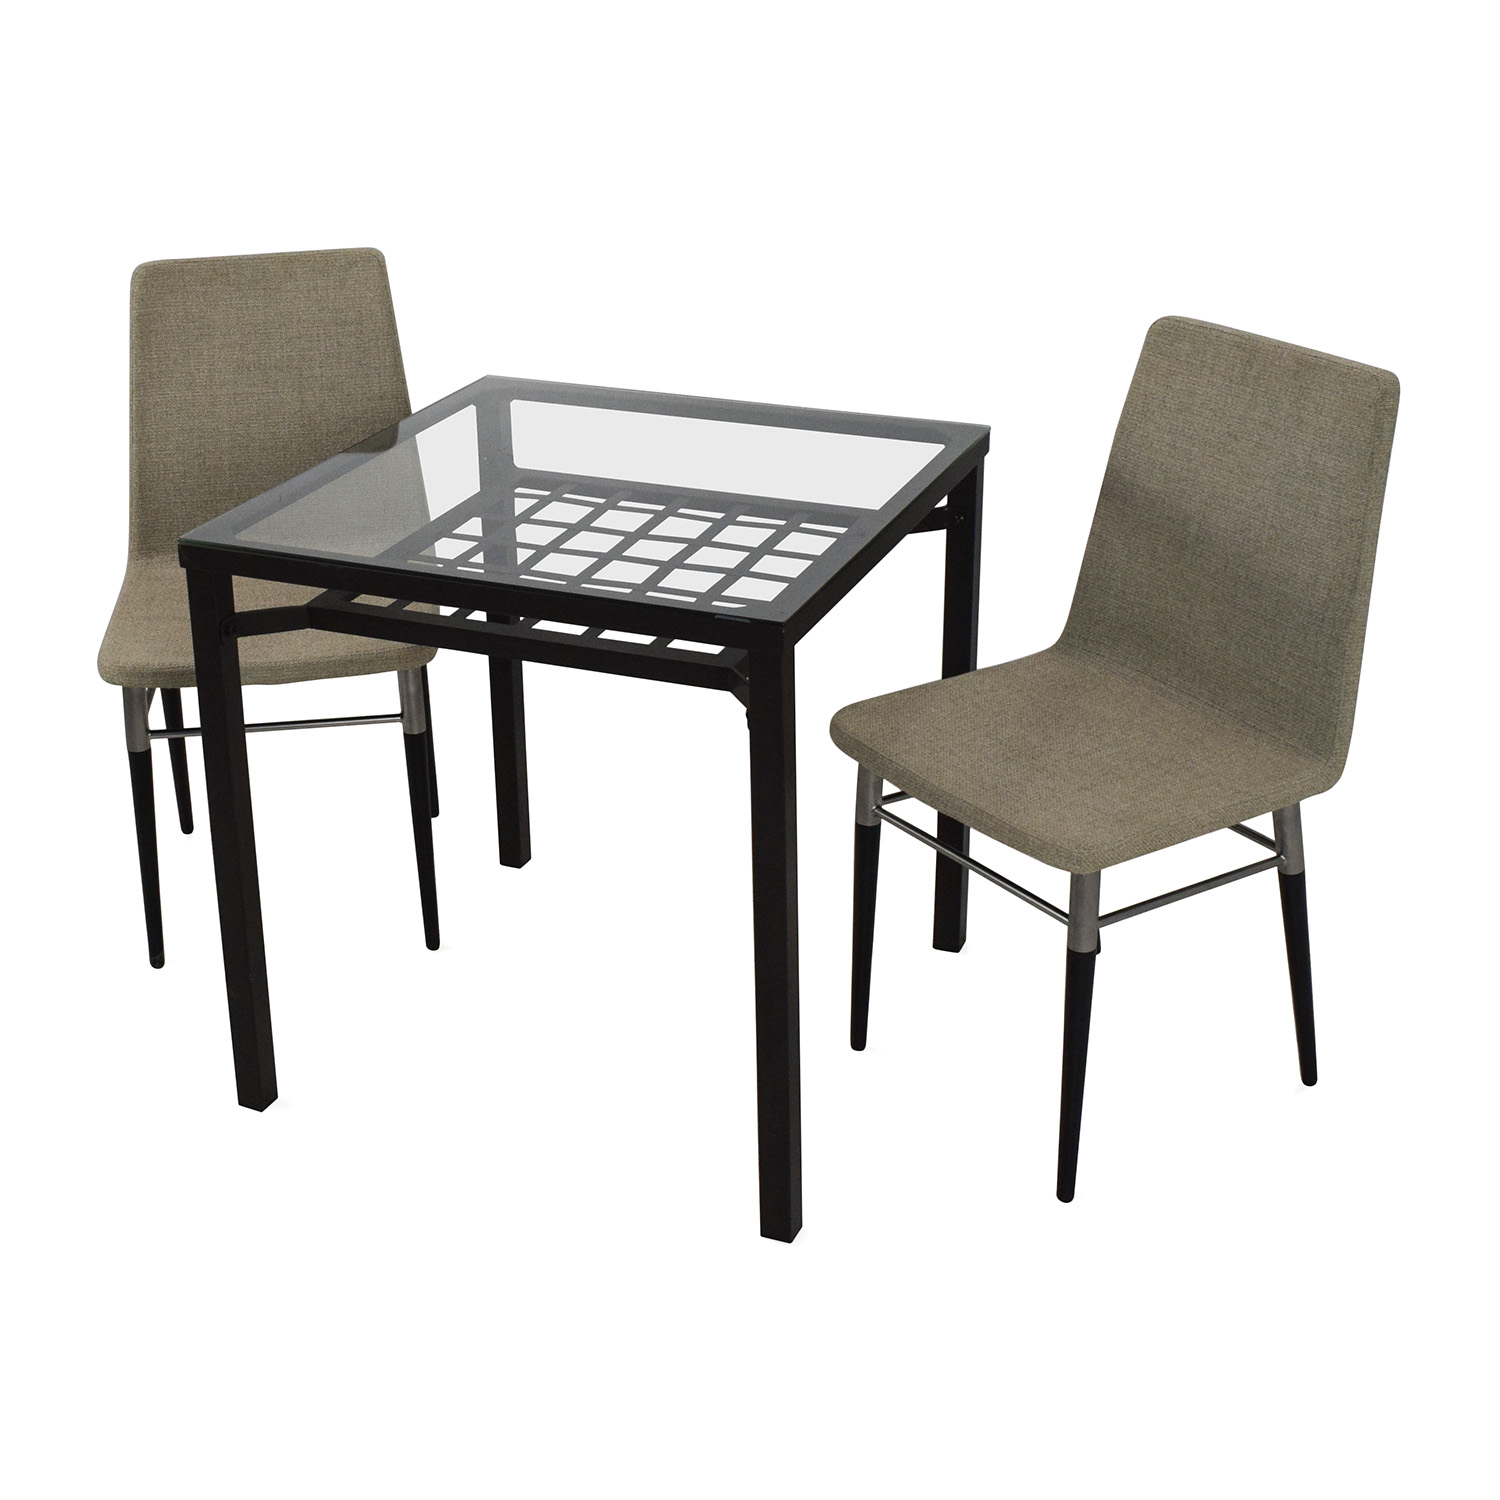 85 off ikea ikea granas table with preben chairs tables. Black Bedroom Furniture Sets. Home Design Ideas